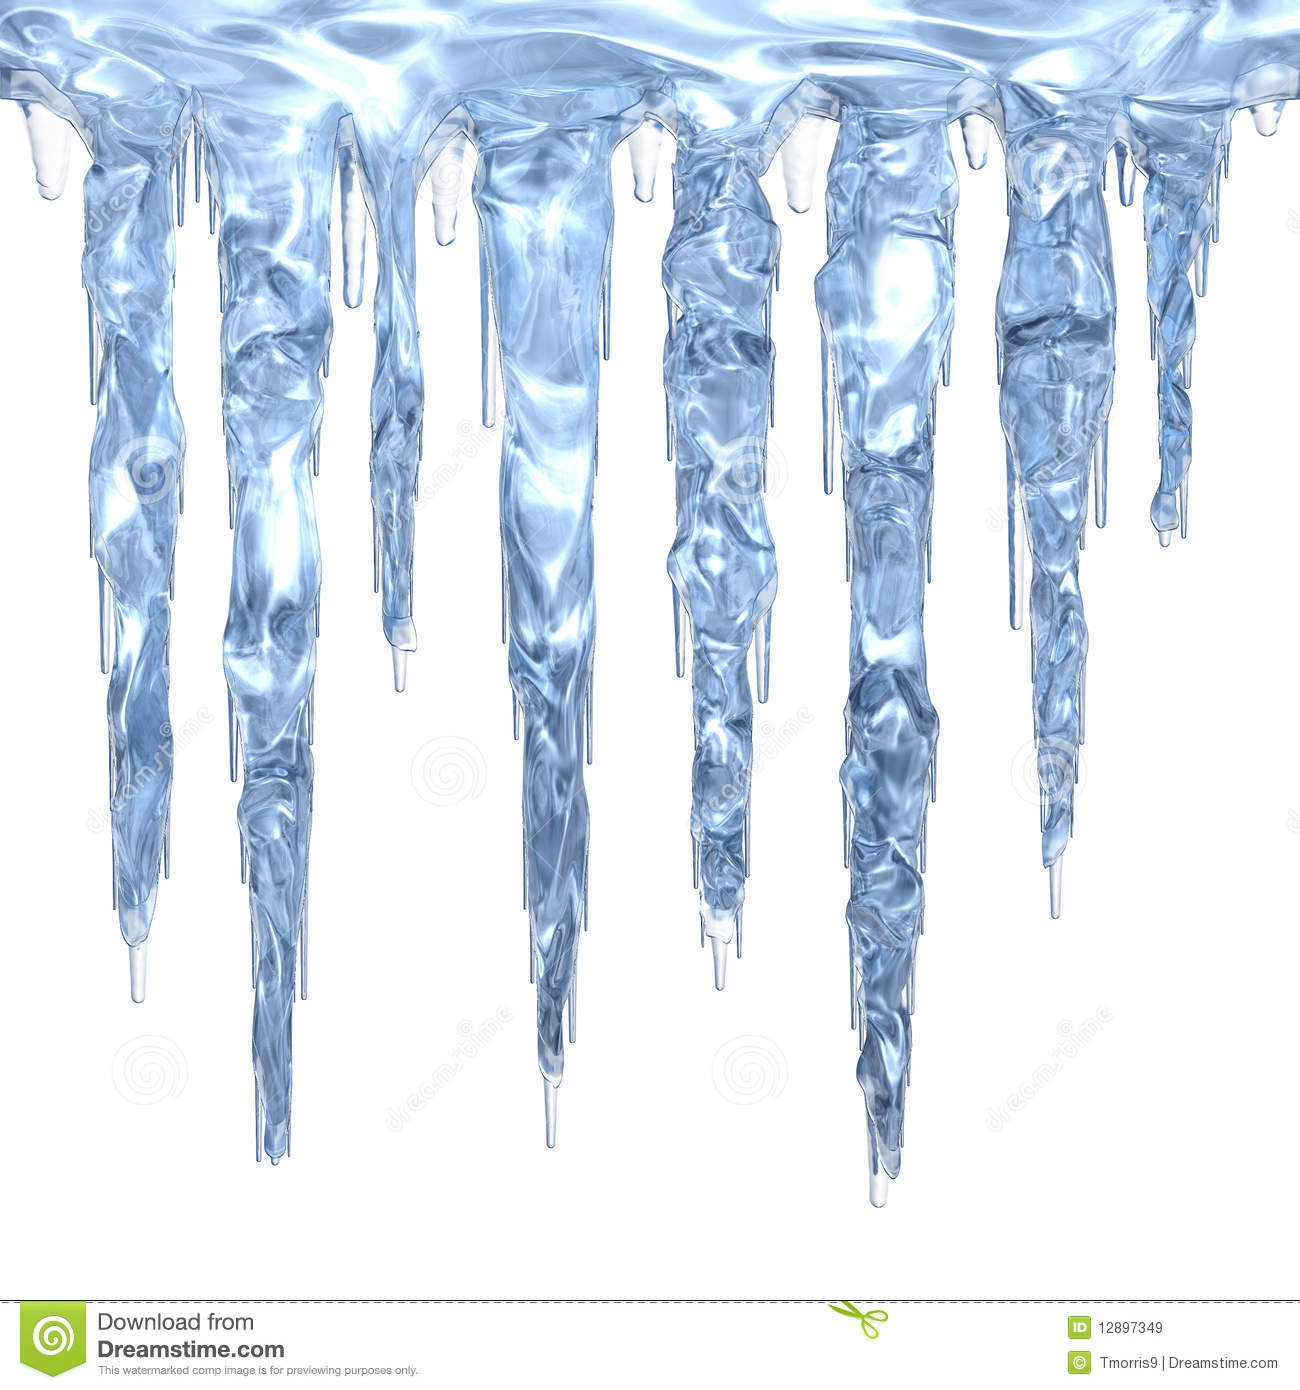 Icicle Png - Icicle, Transparent background PNG HD thumbnail